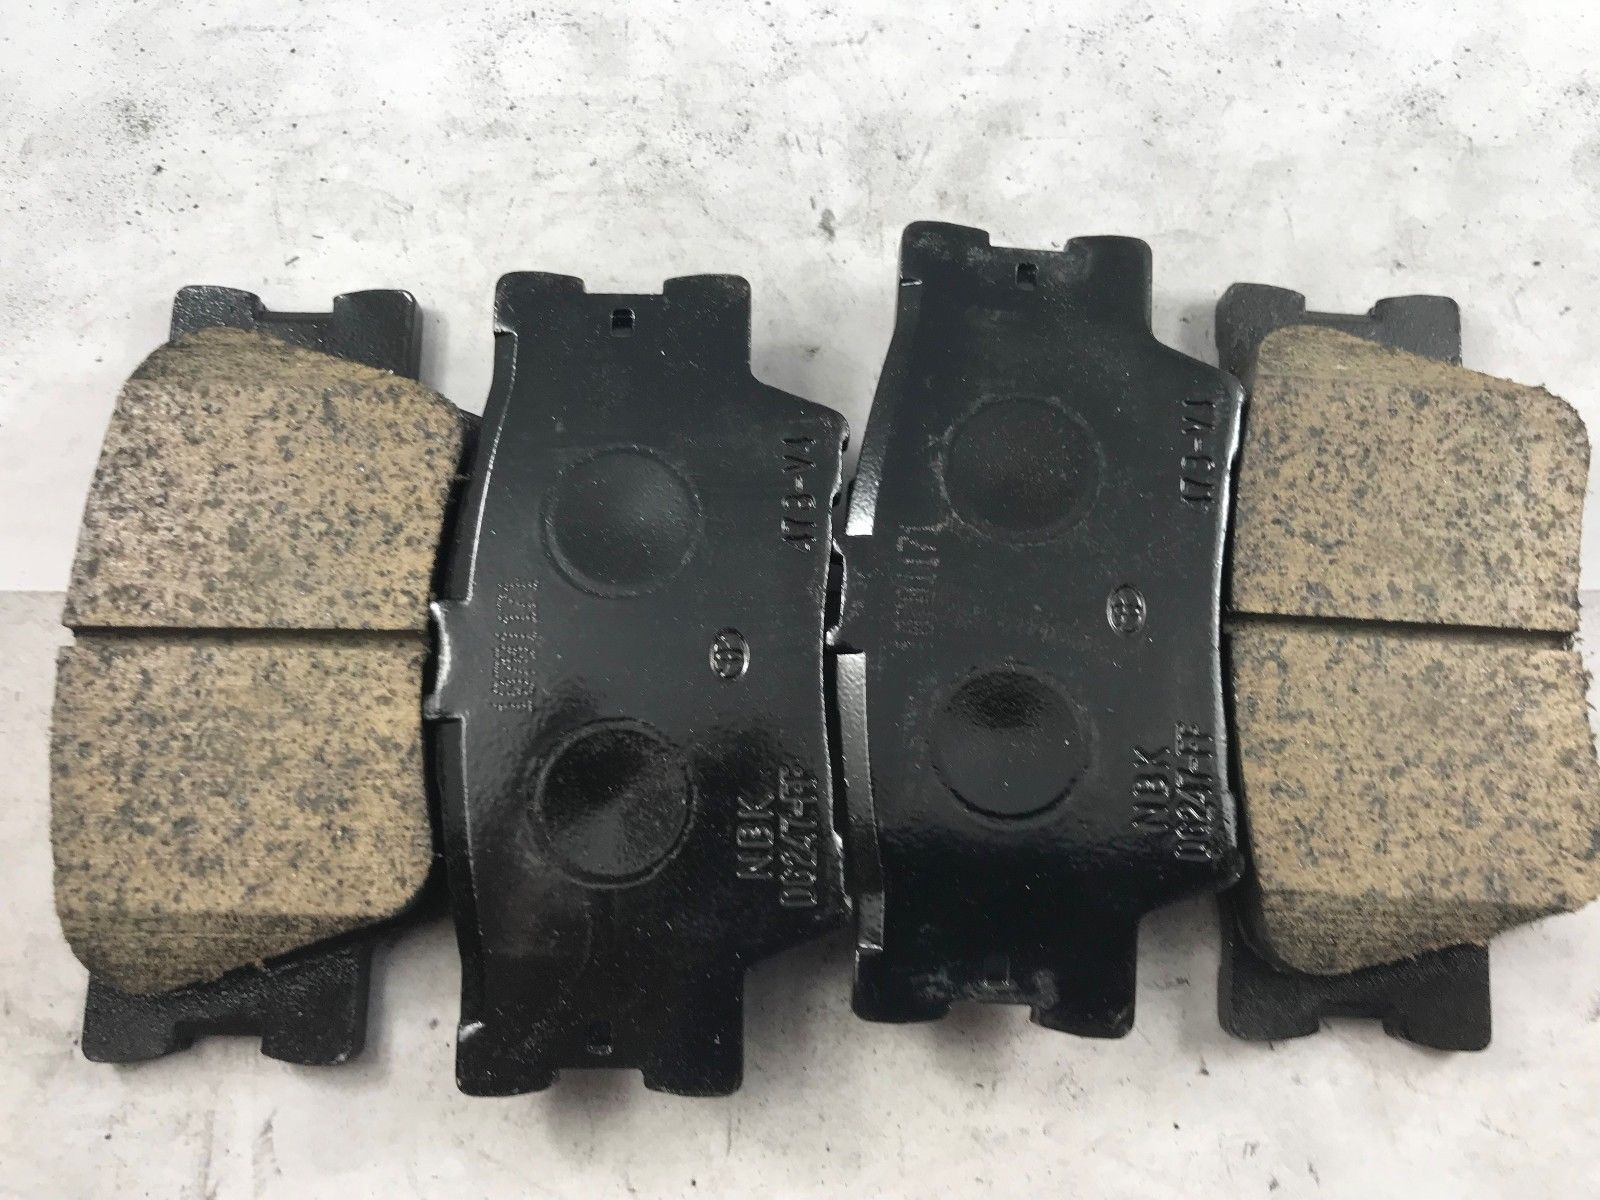 CONFIRMED NEW BRAKE PADS